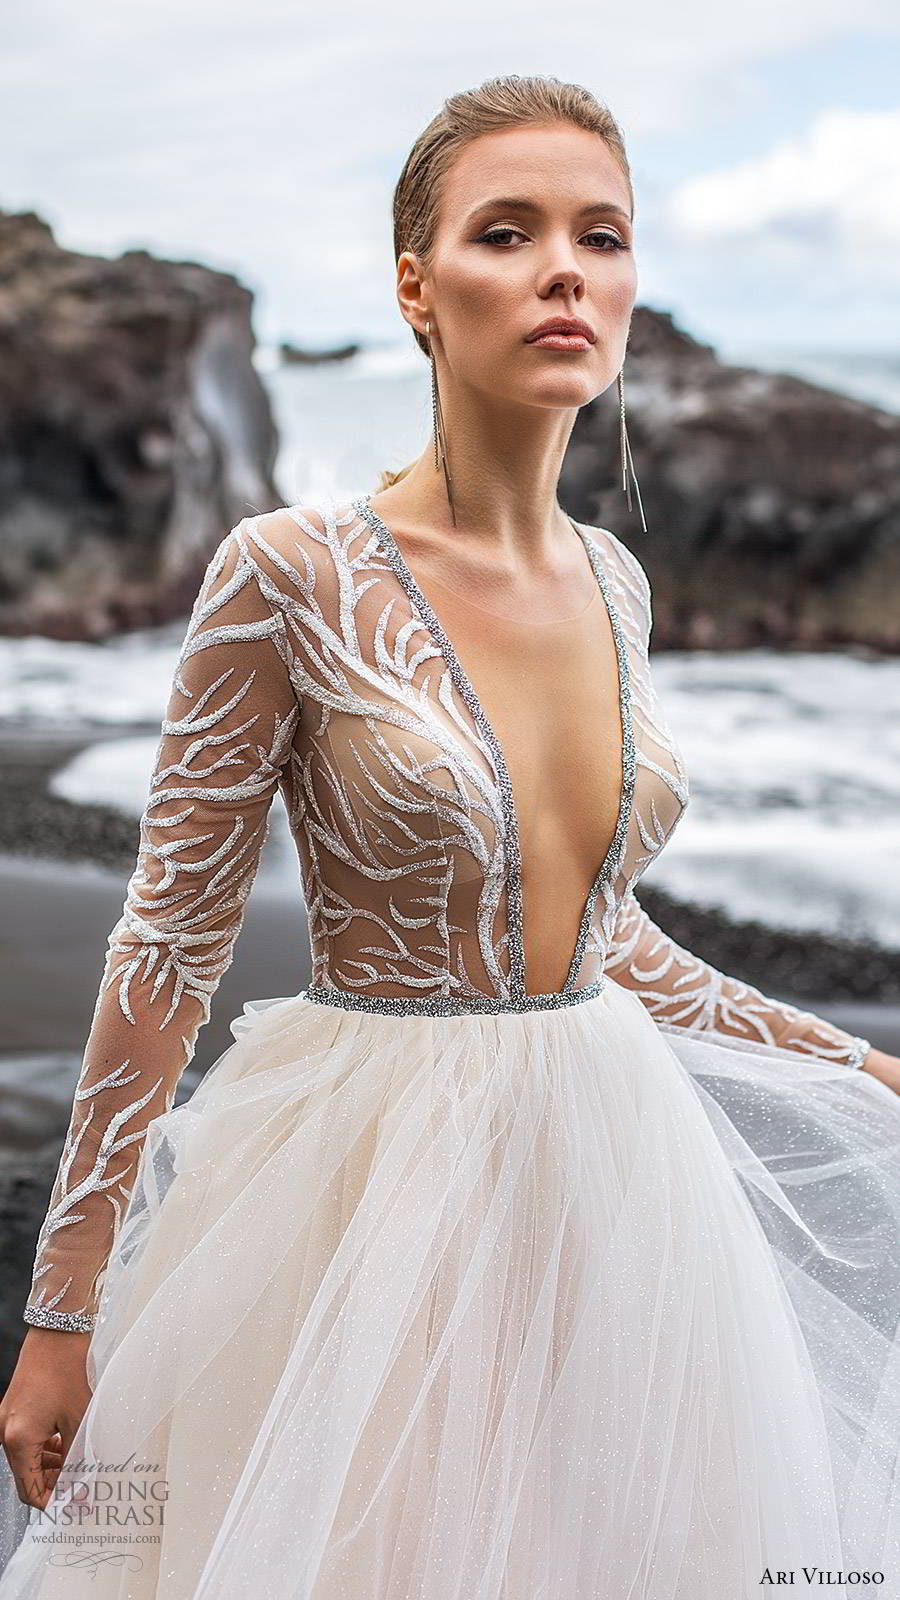 ari villoso 2020 bridal illusion long sleeves deep v neckline sheer embellished bodice a line ball gown wedding dress (13) romantic modern chapel train zv